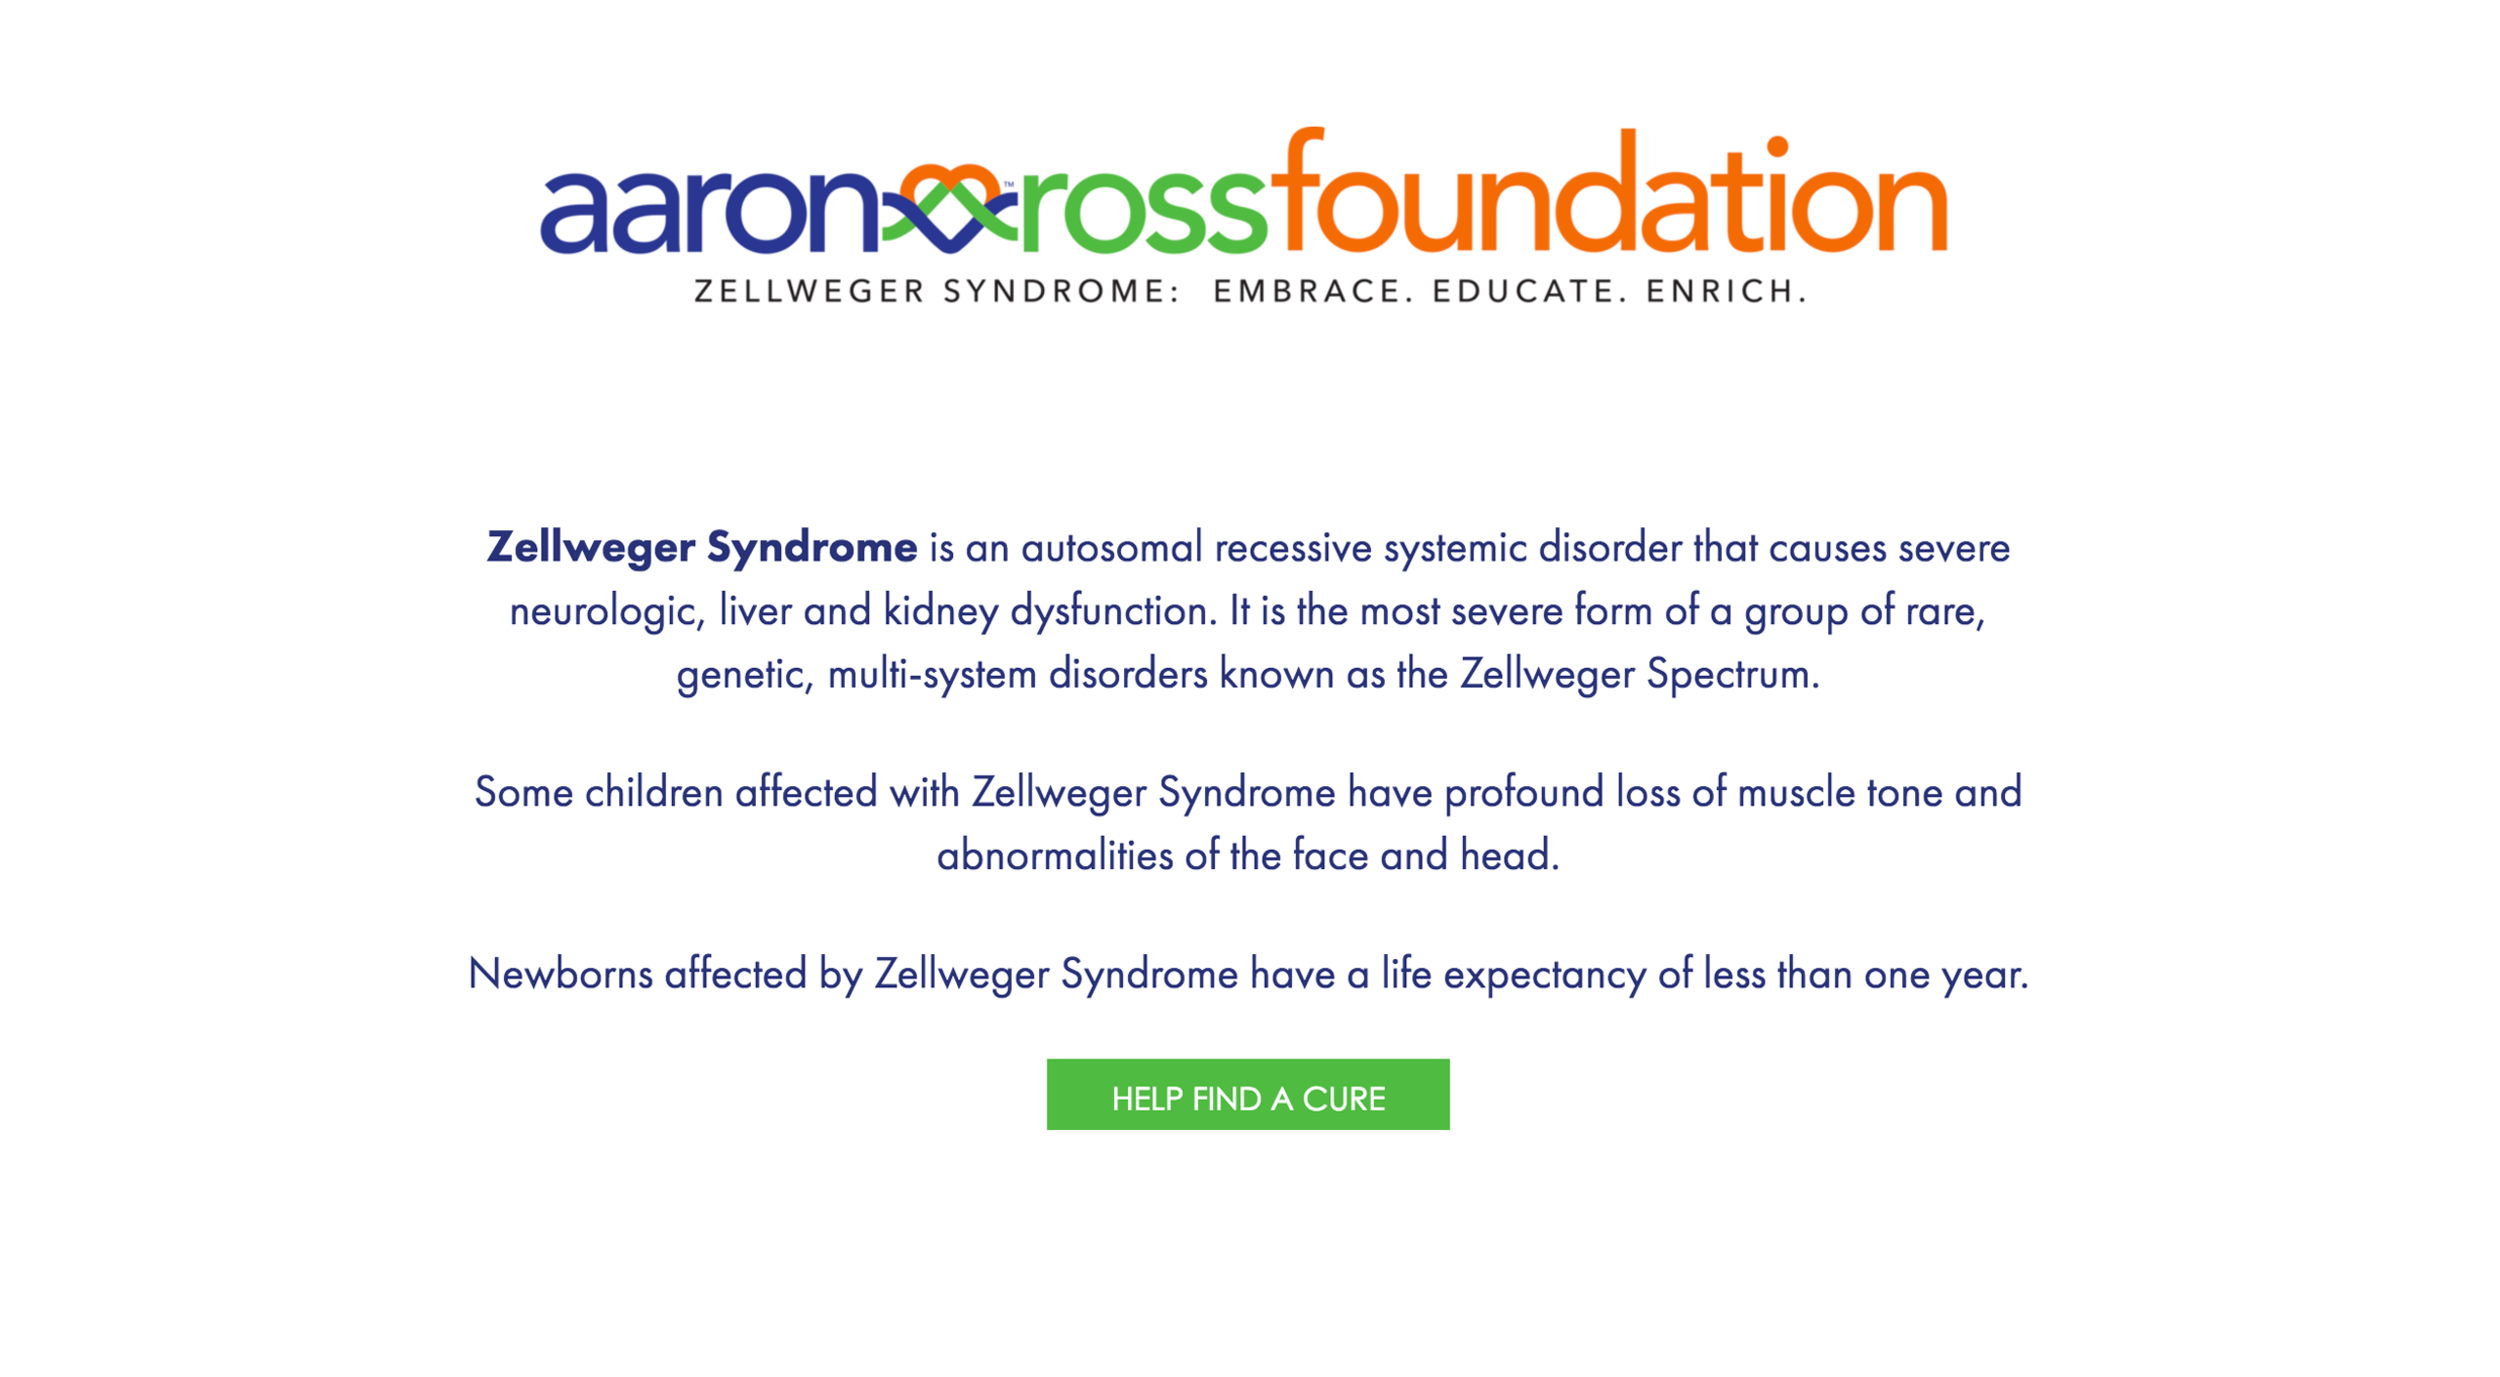 Aaron Ross Foundation